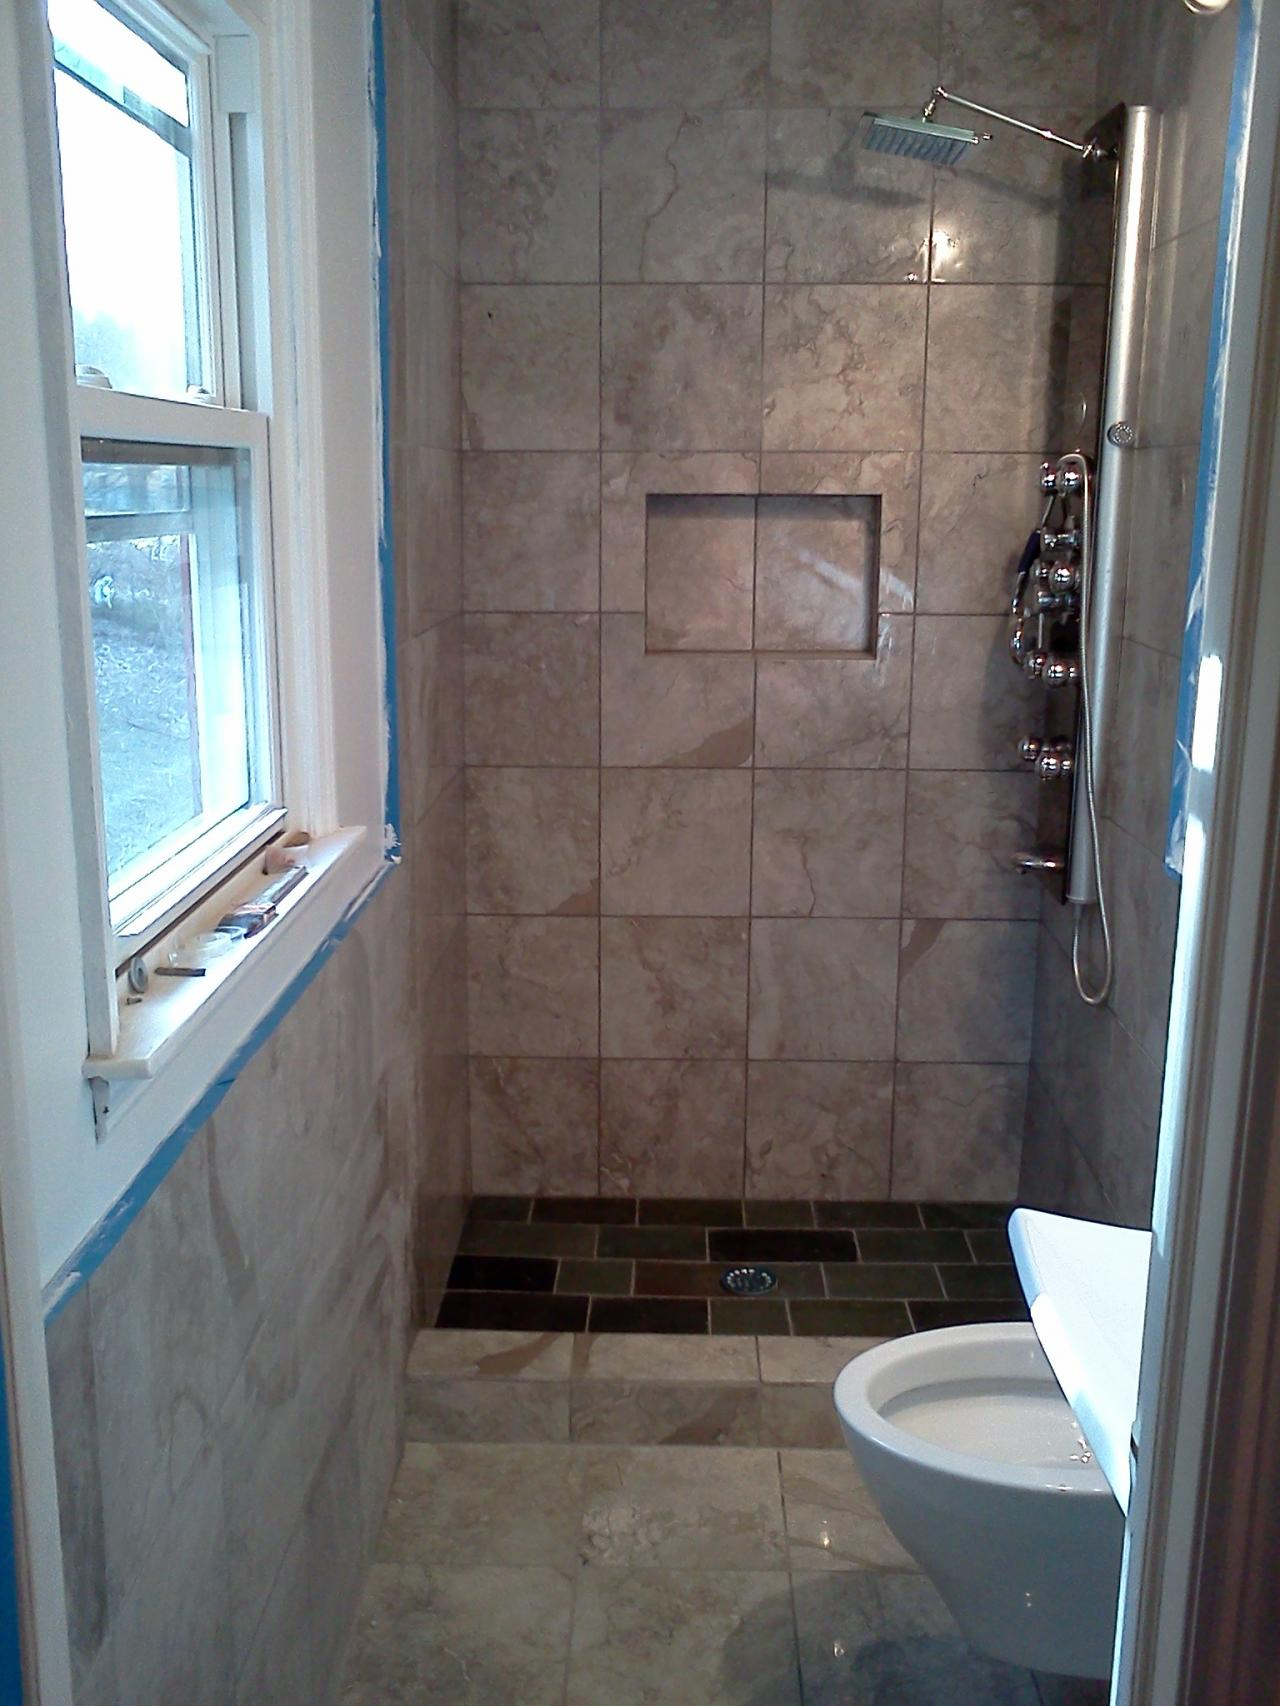 Remake Remodeling Co Tile Mosaics - Bathroom remodeling schenectady ny